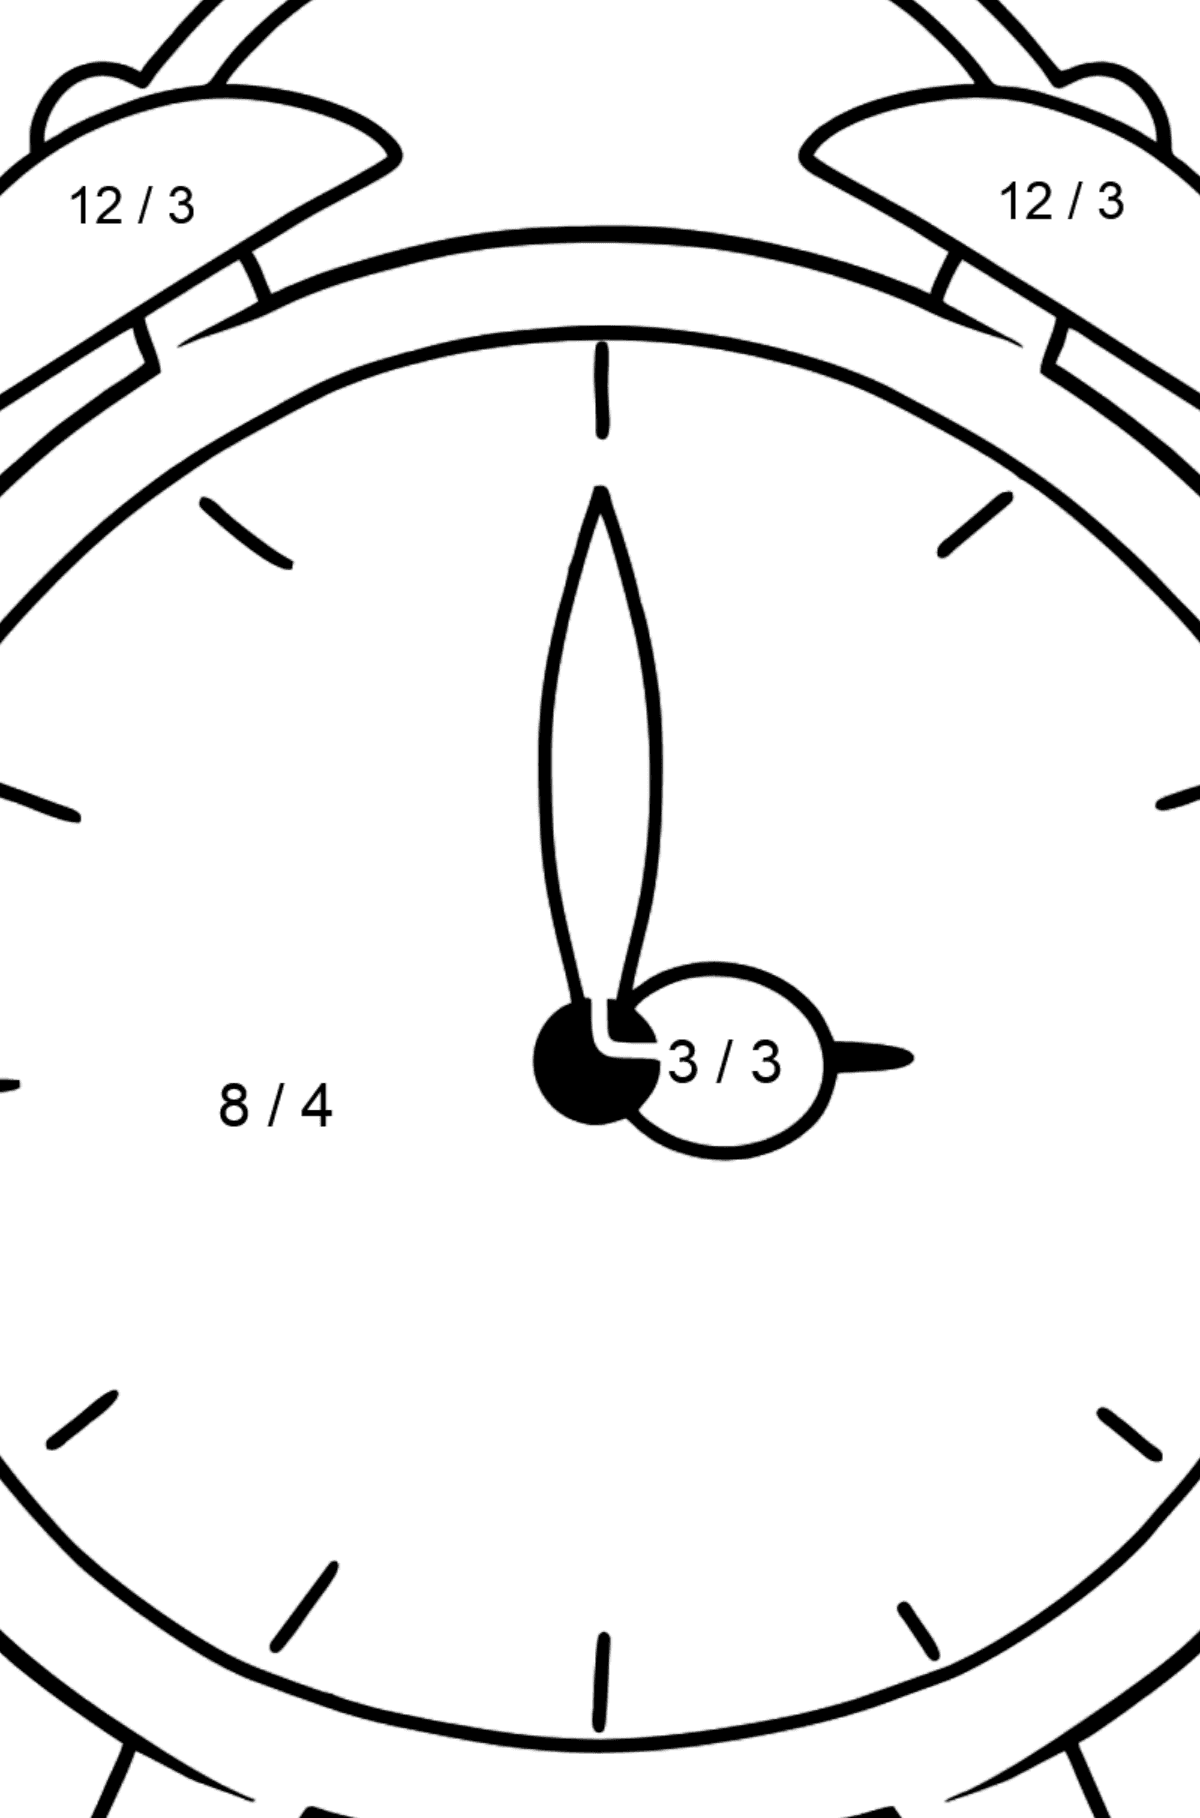 Alarm Clock coloring page - Math Coloring - Division for Kids